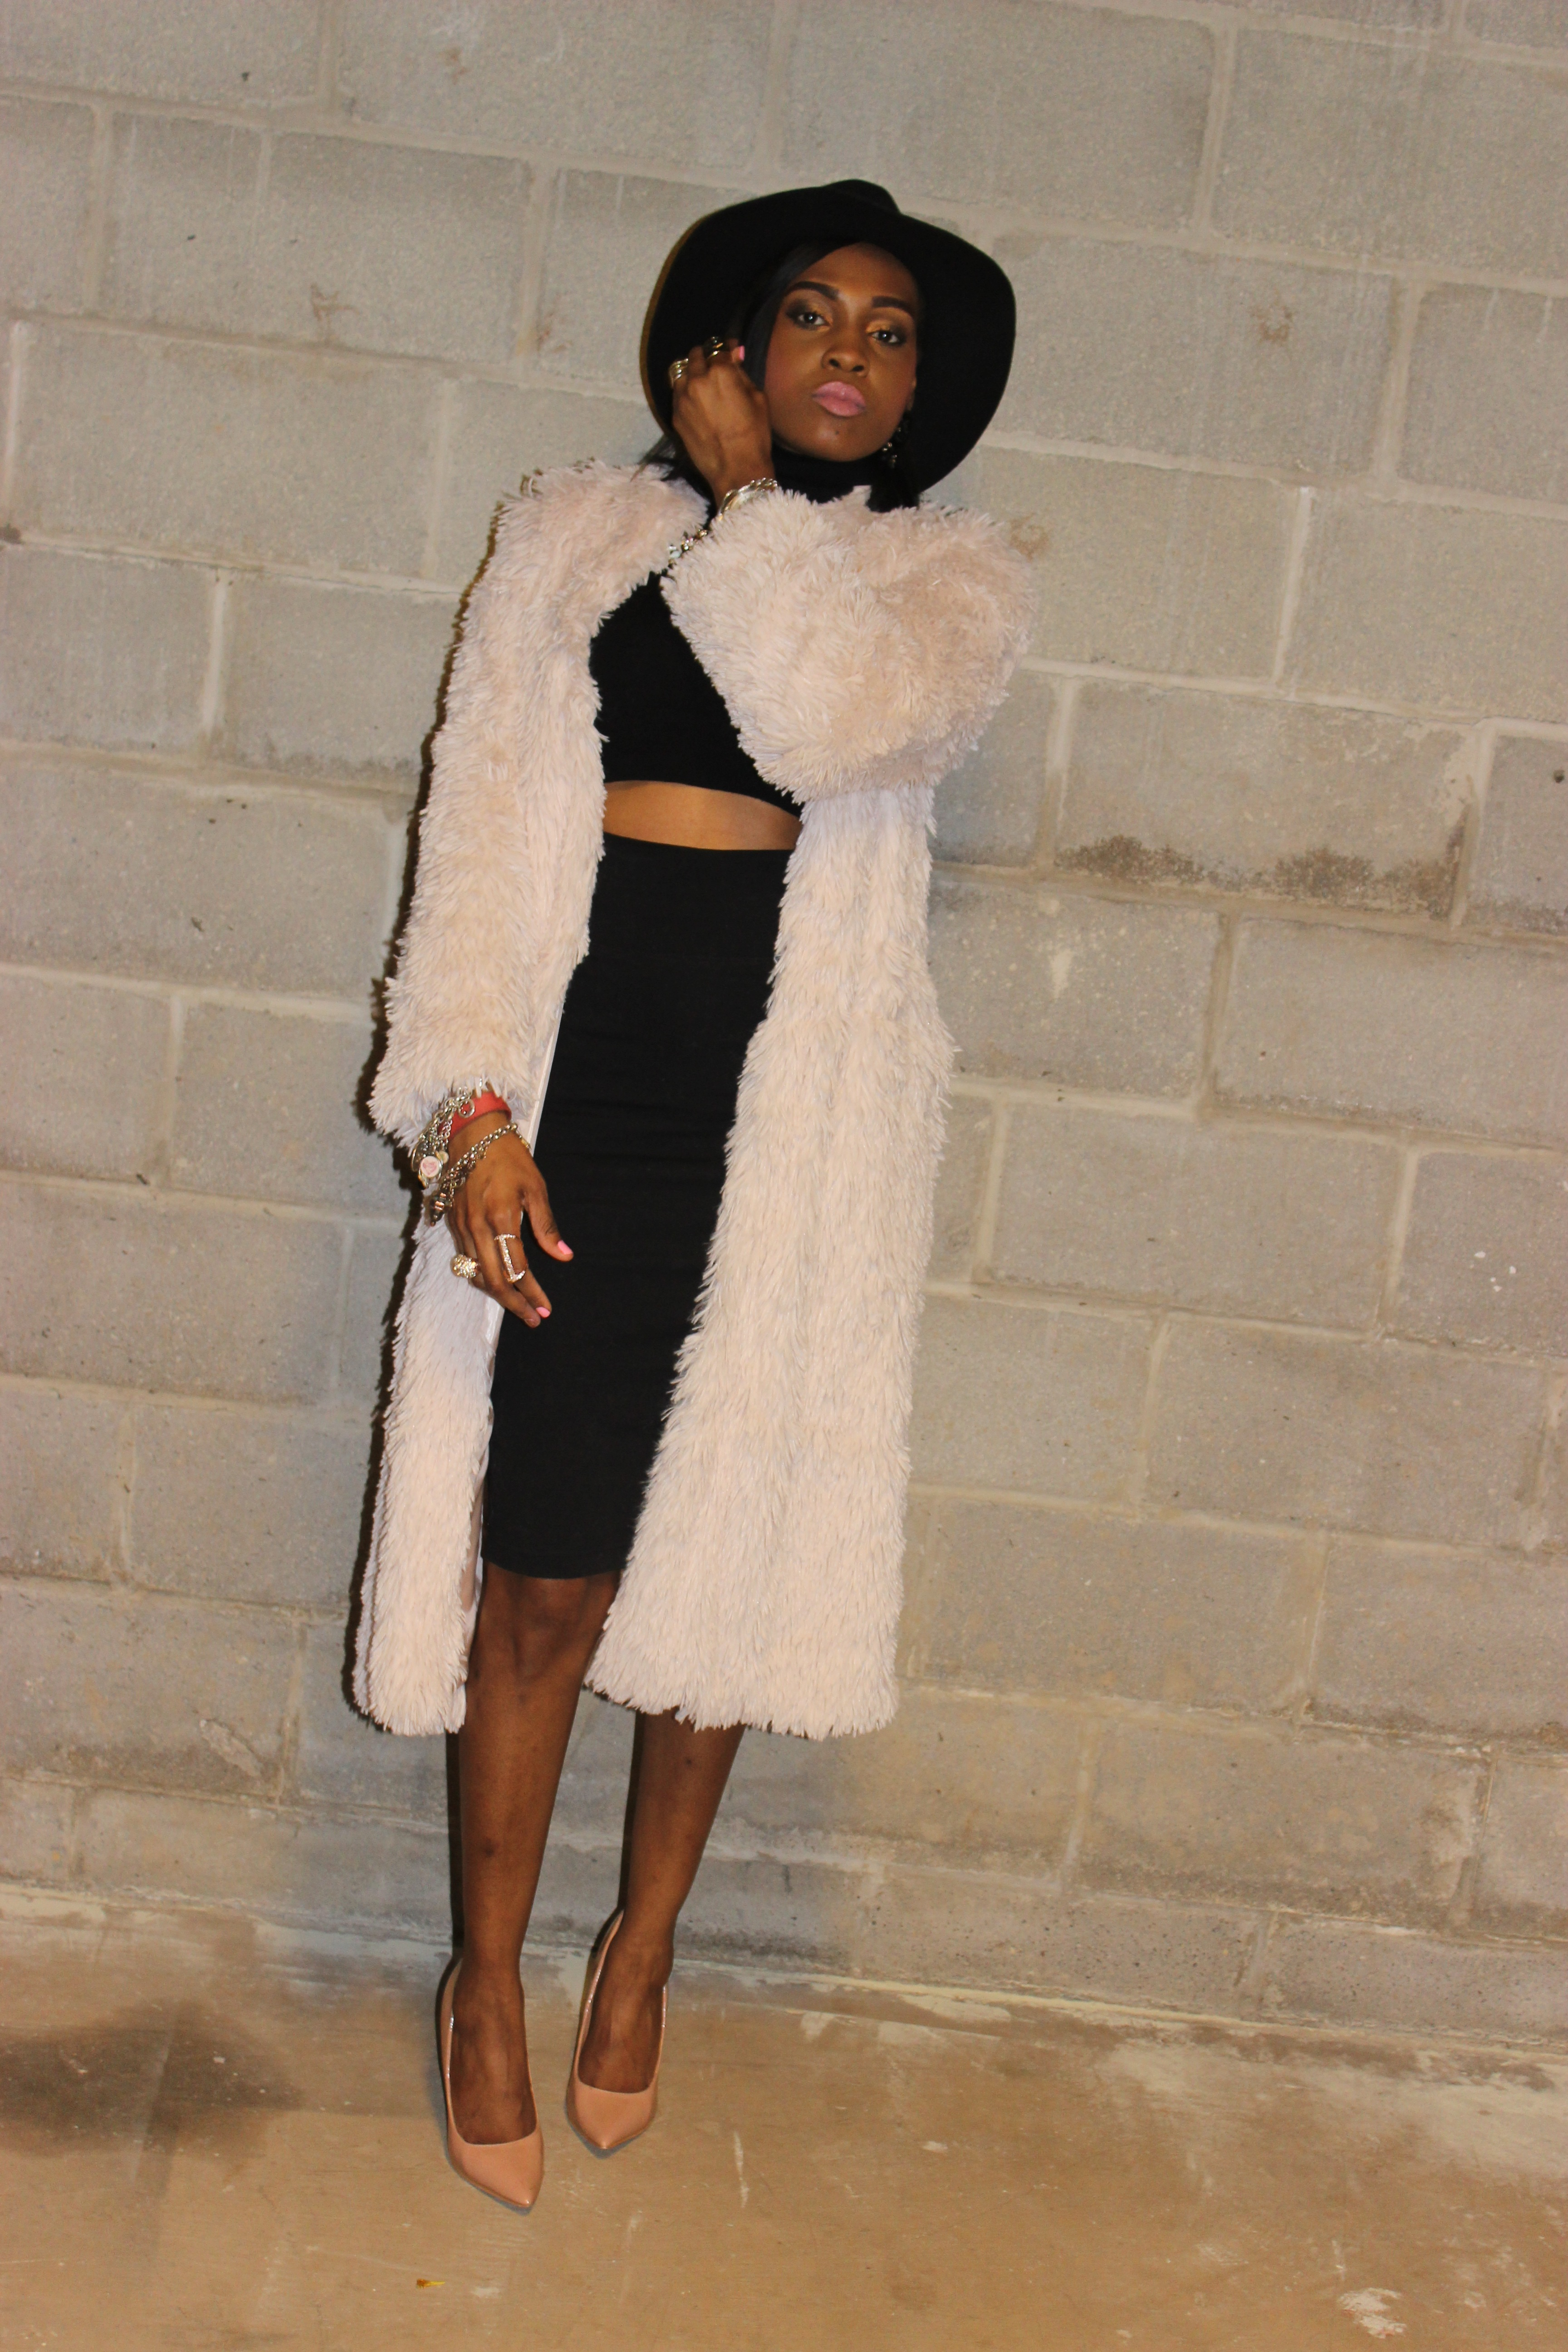 Style-files-with-Pretty-Price-Forever21-Pencil-SKIRT-Forever21-croP-sweater-turtleneck-forever-21-blush-faux-fur-duster-lulus-nude-heels-target-merona-fedora-oohlalablog-3